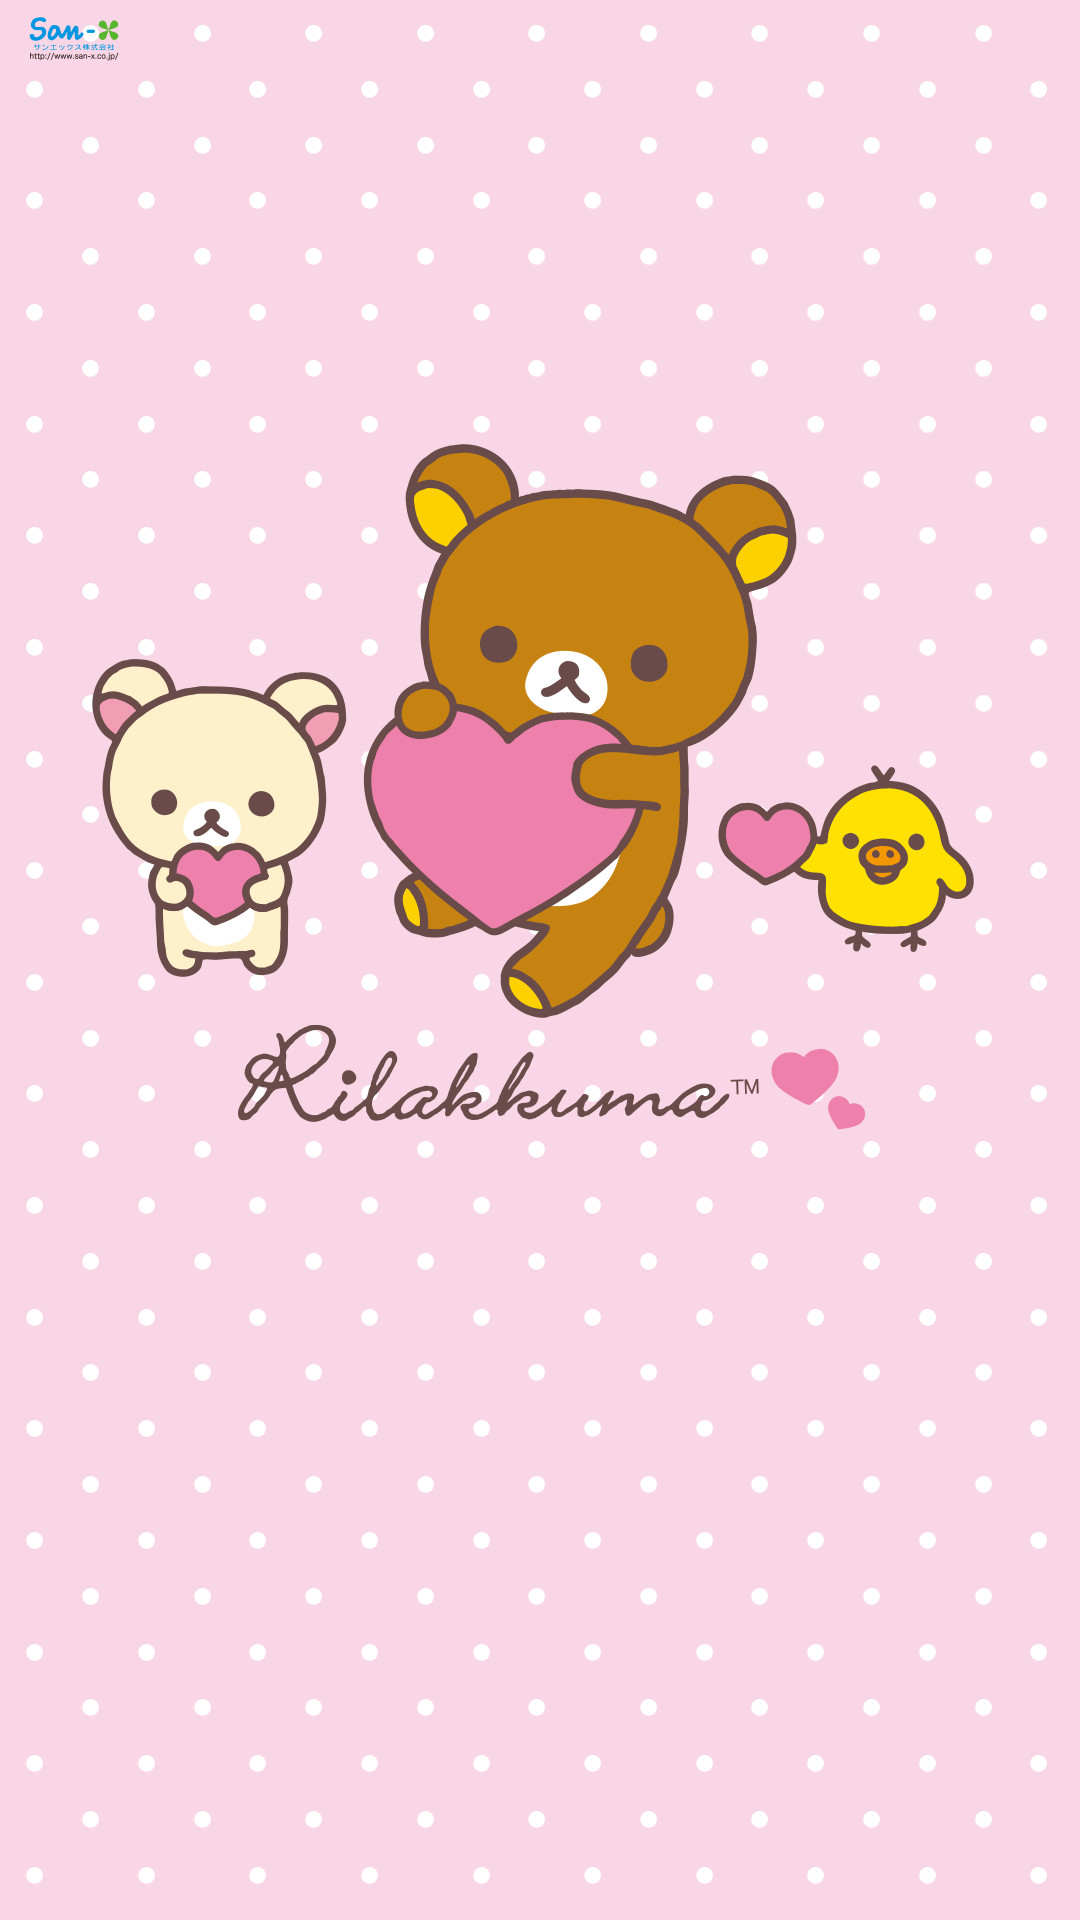 1080x1920 Quickly put small fresh Rilakkuma Wallpaper for your phone now!